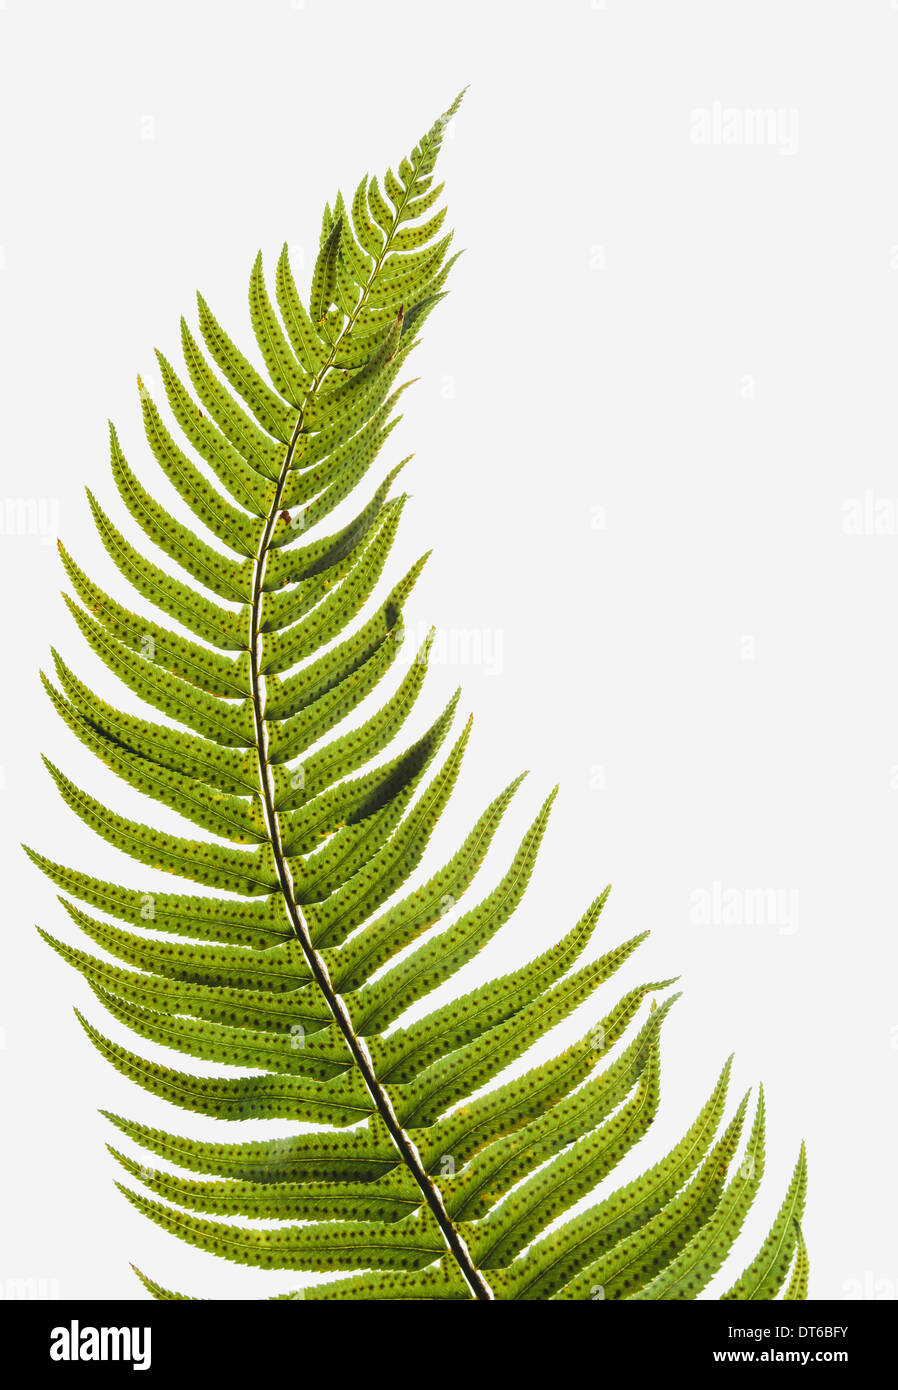 western sword fern a single leaf with leaves spaced evenly up the